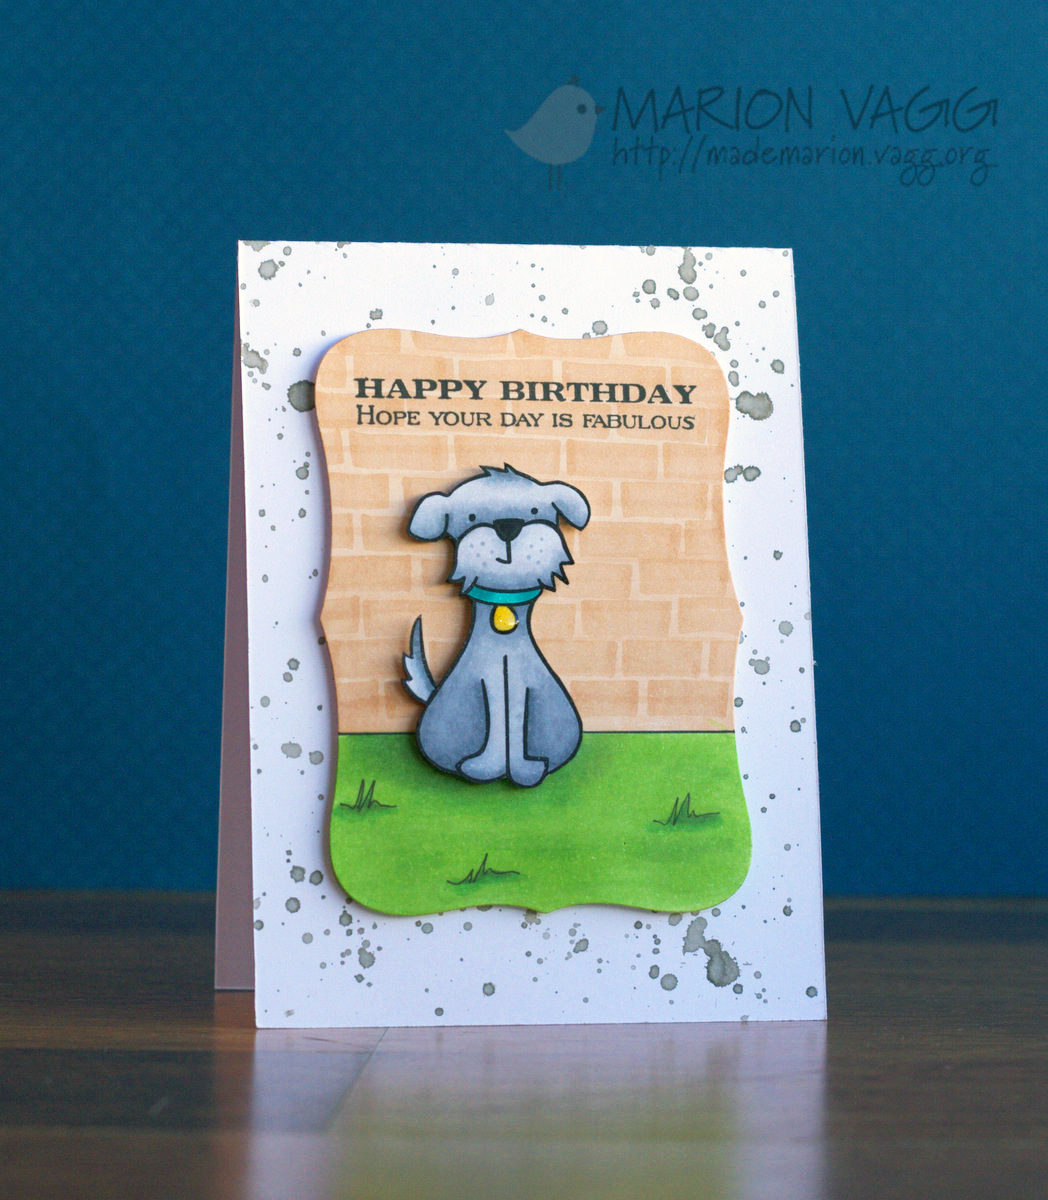 Happy Birthday Dog | Marion Vagg